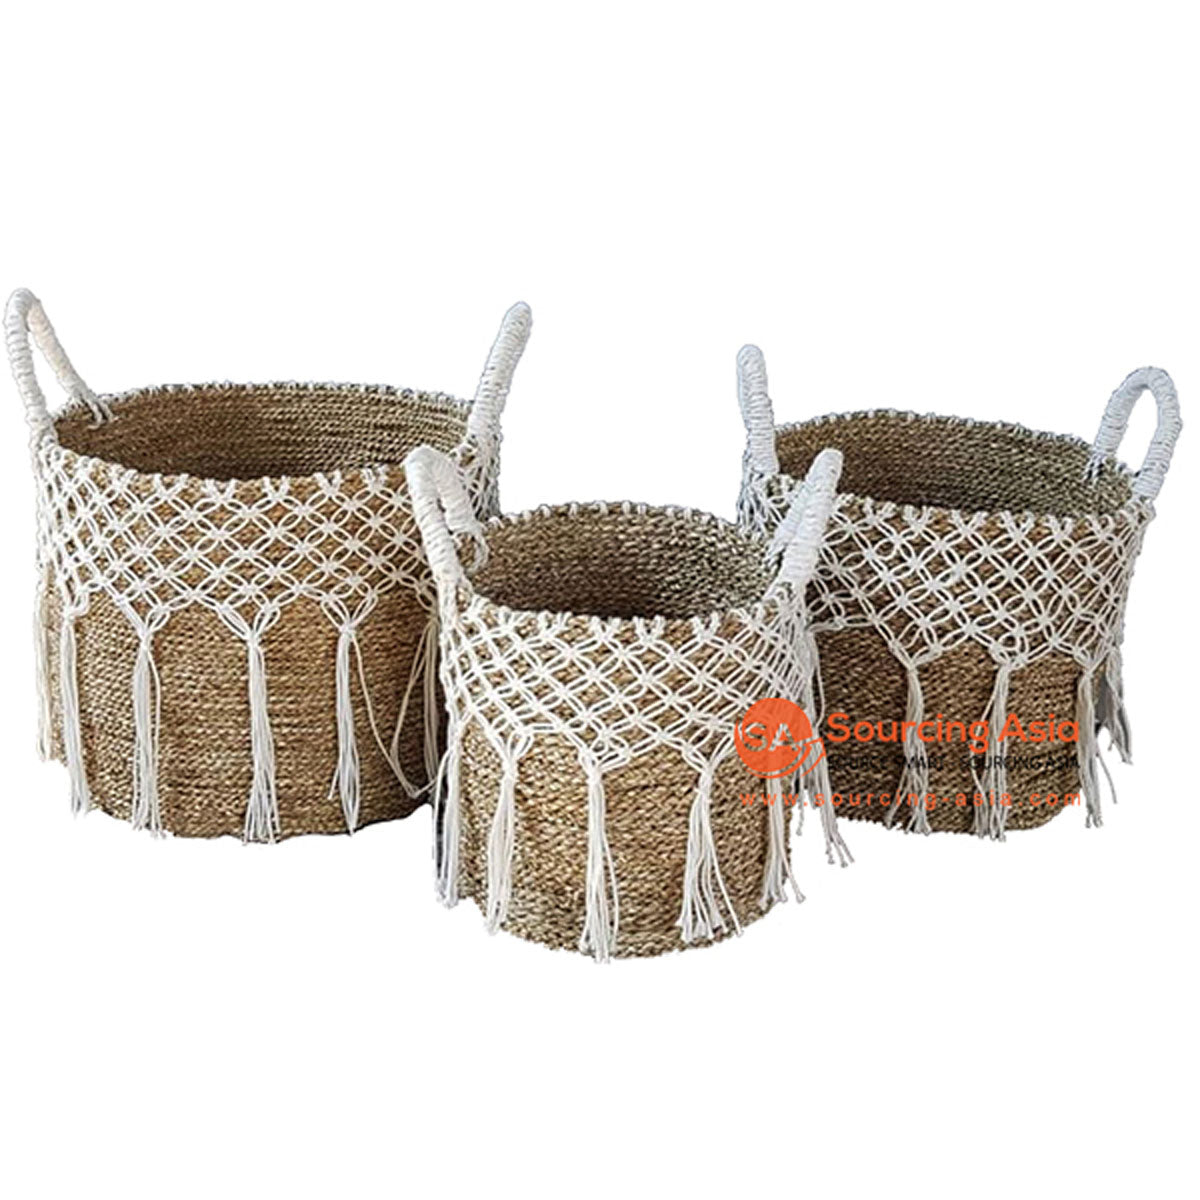 SHL057-13 SET OF THREE SEAGRASS BASKETS WITH MACRAME DETAIL